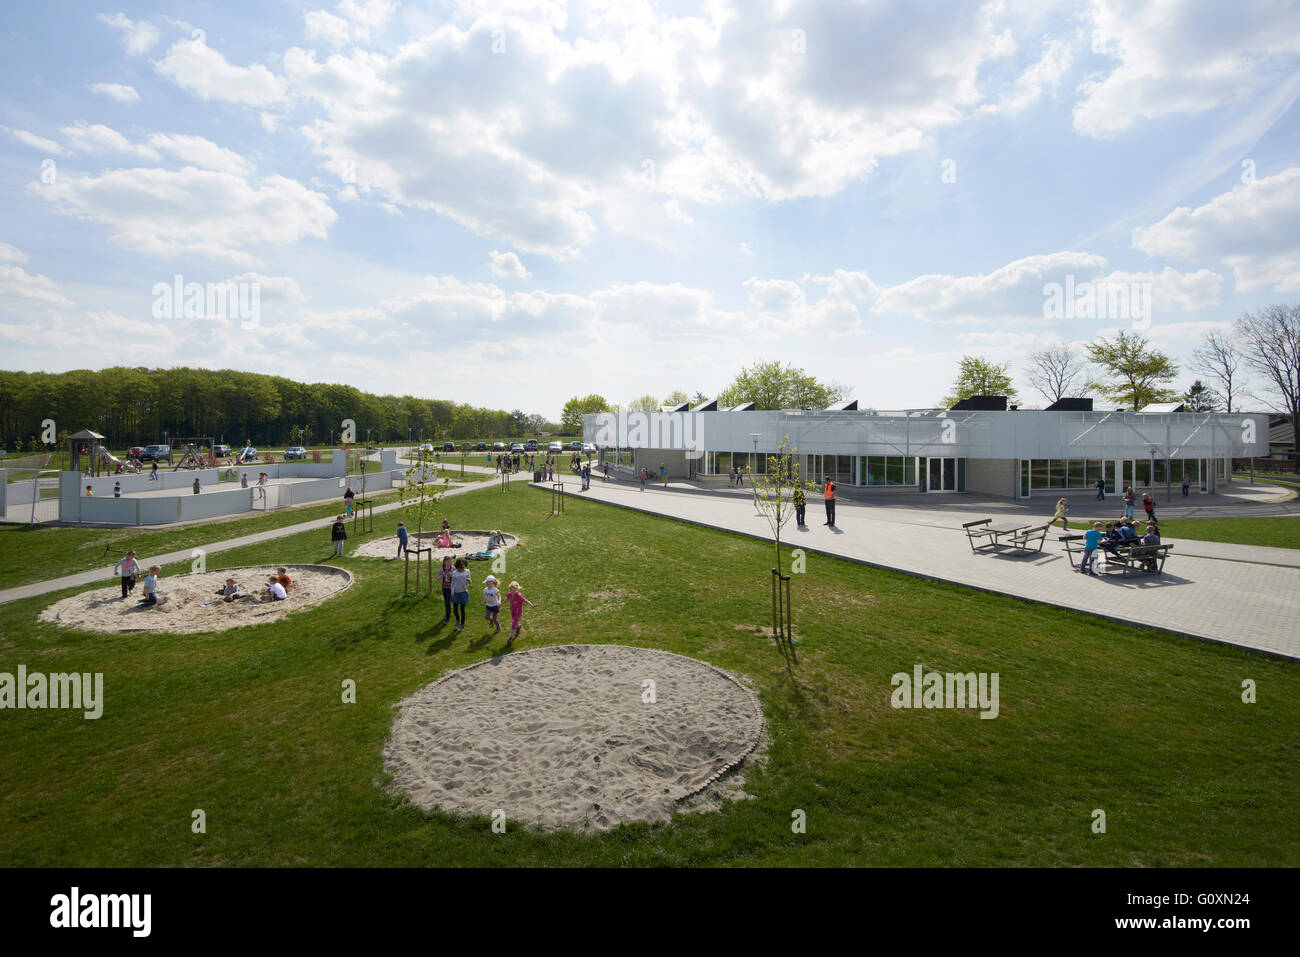 Rask Molle School. A modern single storey building, with landscaping and open spaces, benches and paths, sand pits. - Stock Image